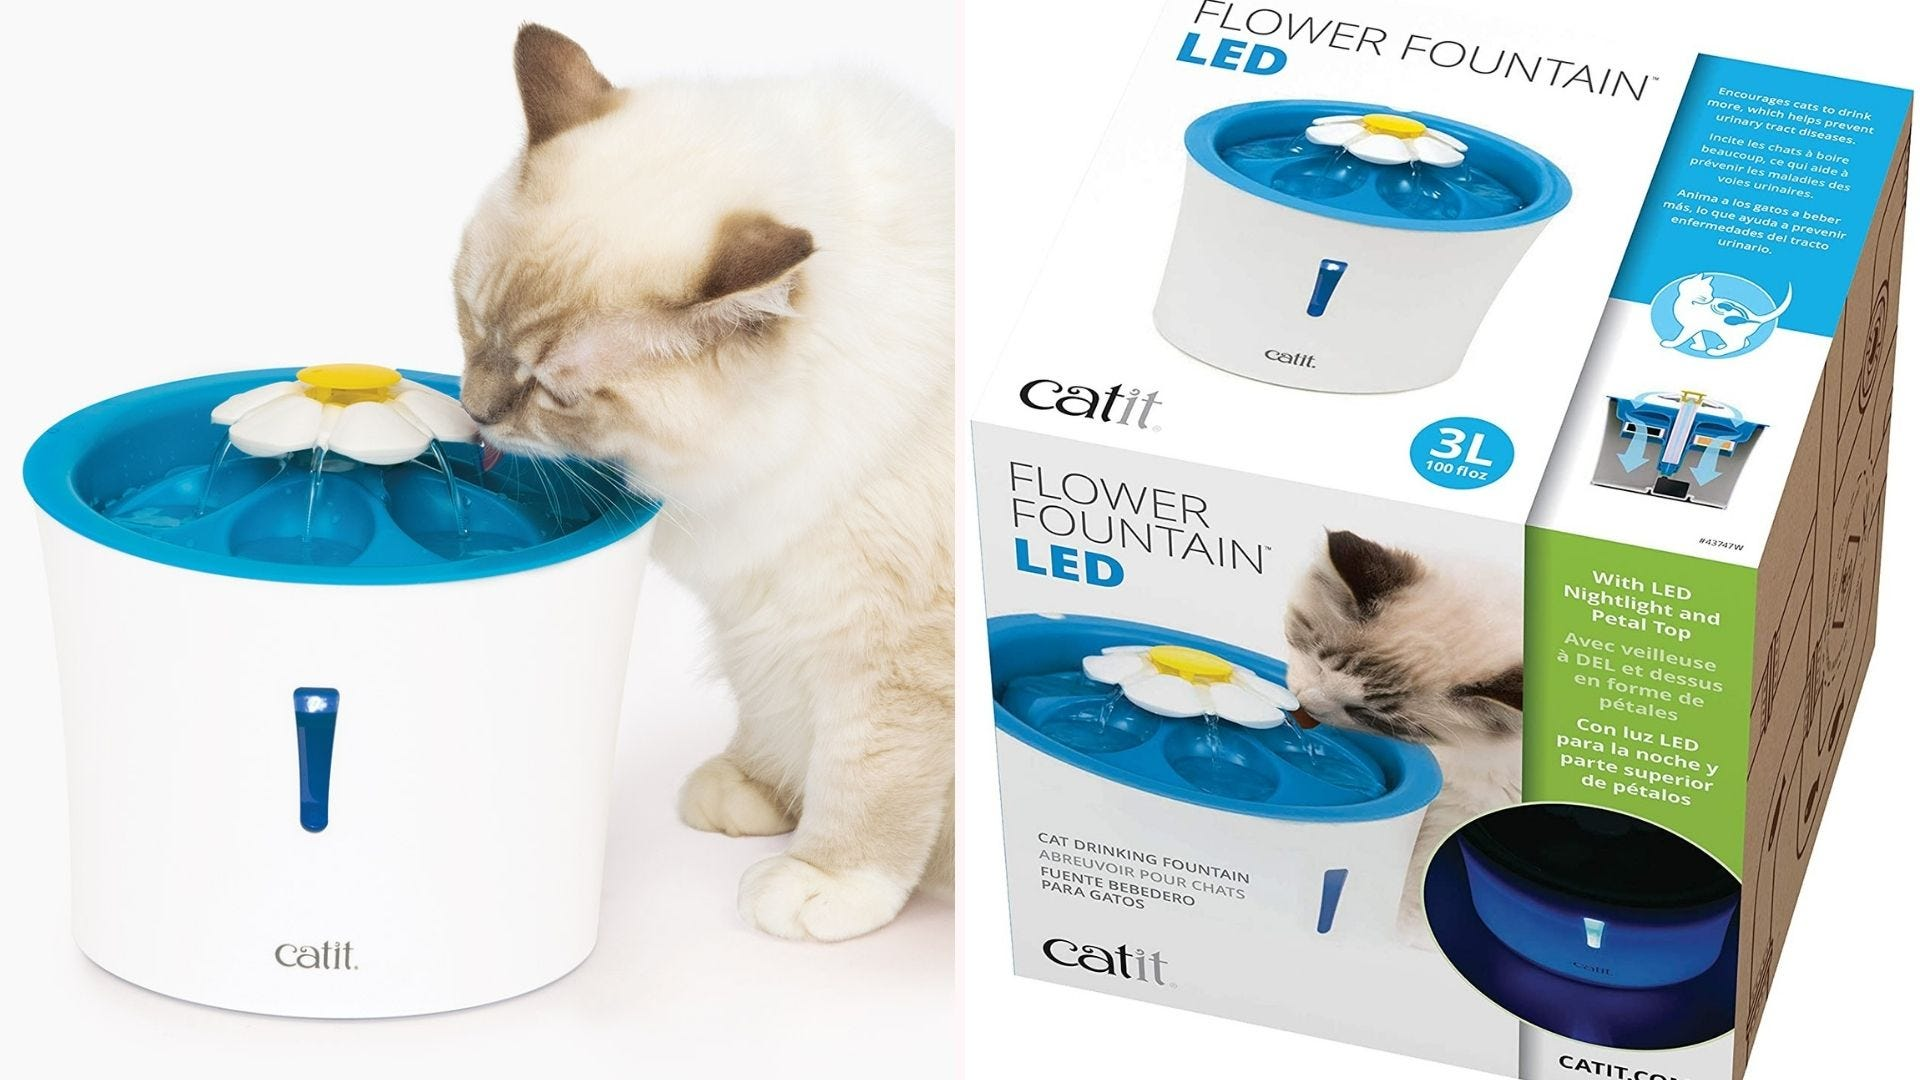 A cat drinking from the blue Catit Flower Fountain next to the box it comes in.